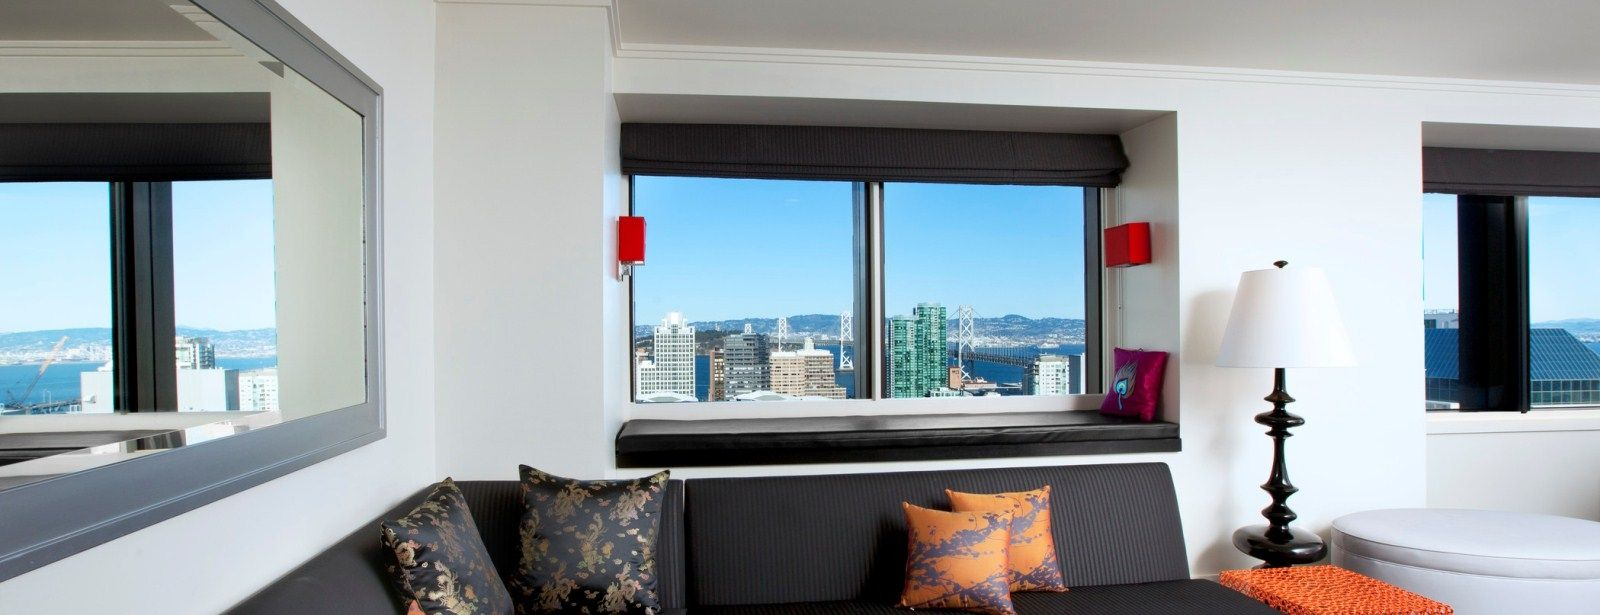 Extreme Wow Suite - San Francisco Accommodations